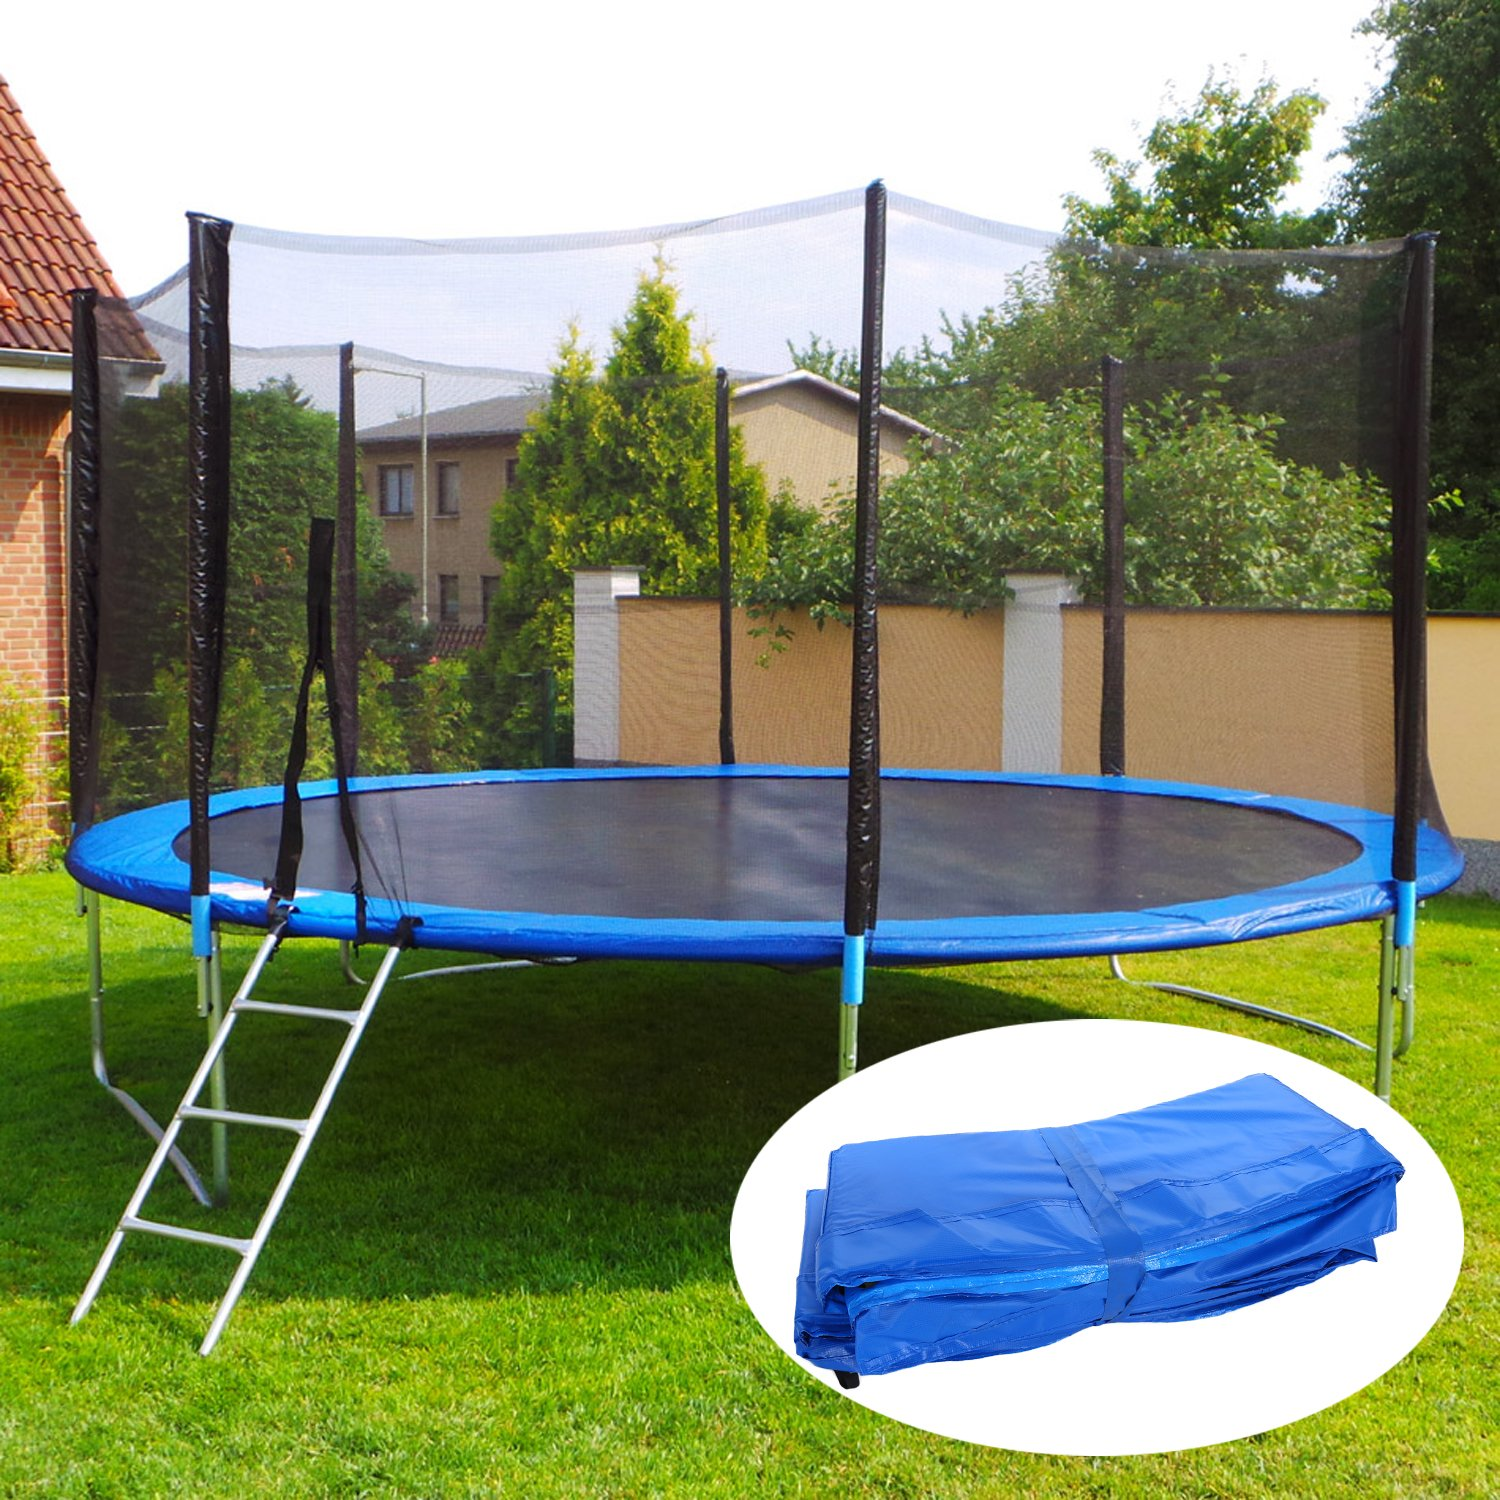 Binxin Heavy Duty Waterproof 10 12 14 15FT Trampoline Safety Pad Cover Trampoline Replacement Padding Cover